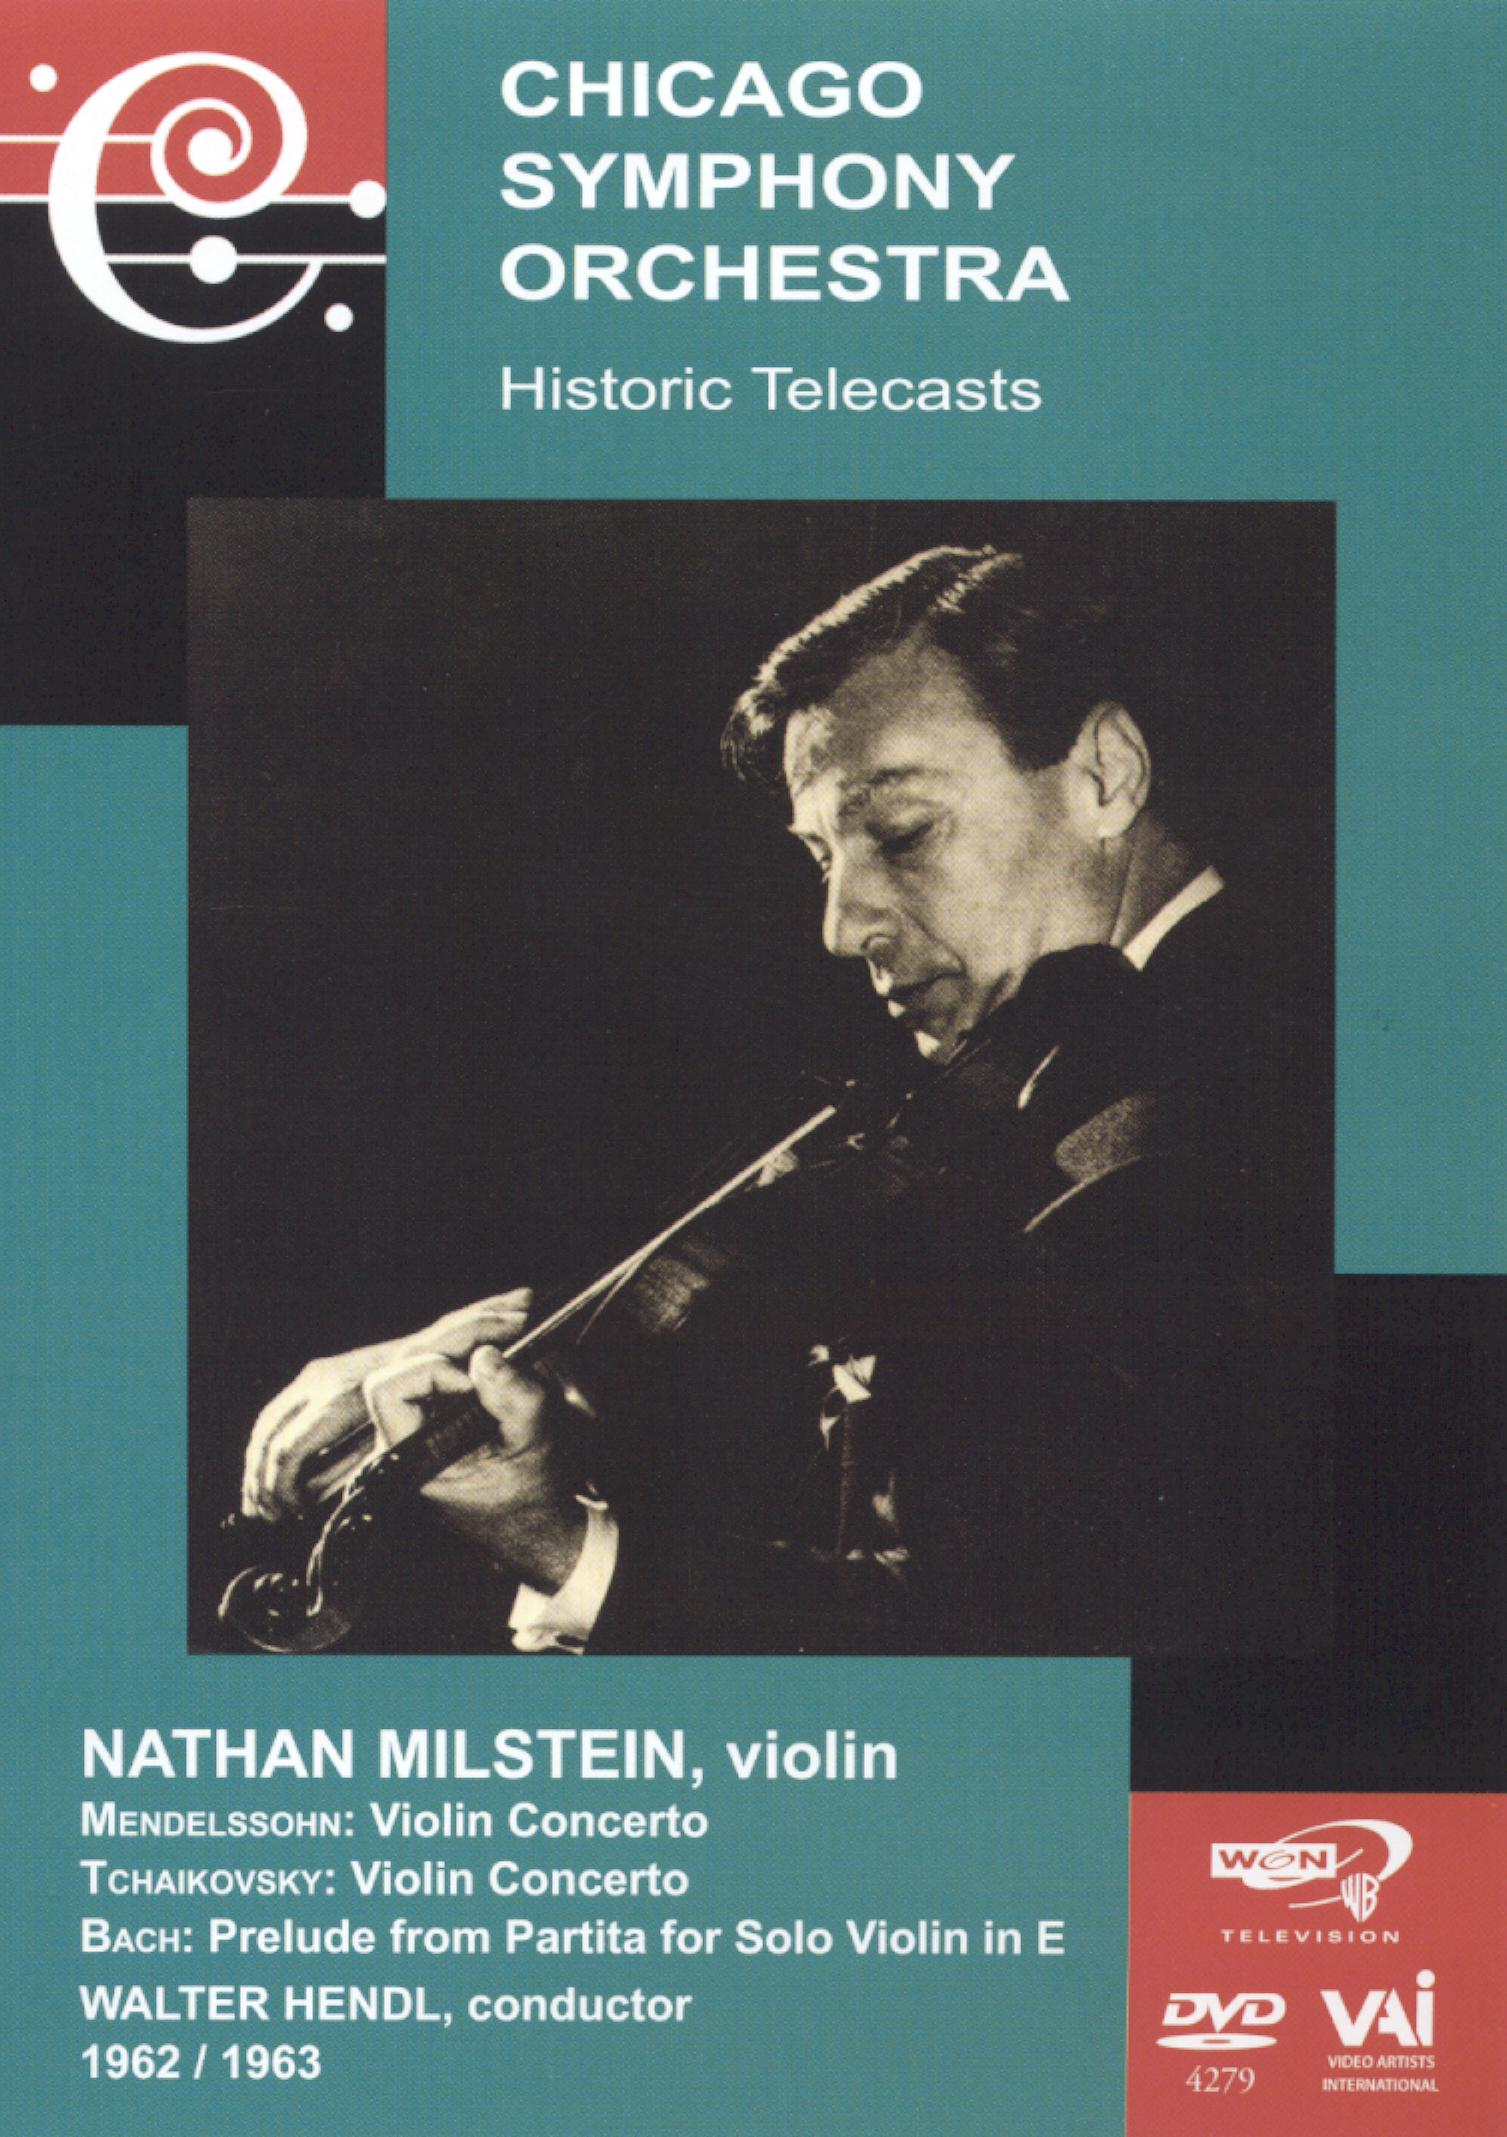 Chicago Symphony Orchestra Historic Telecasts, Vol. 8: Nathan Milstein